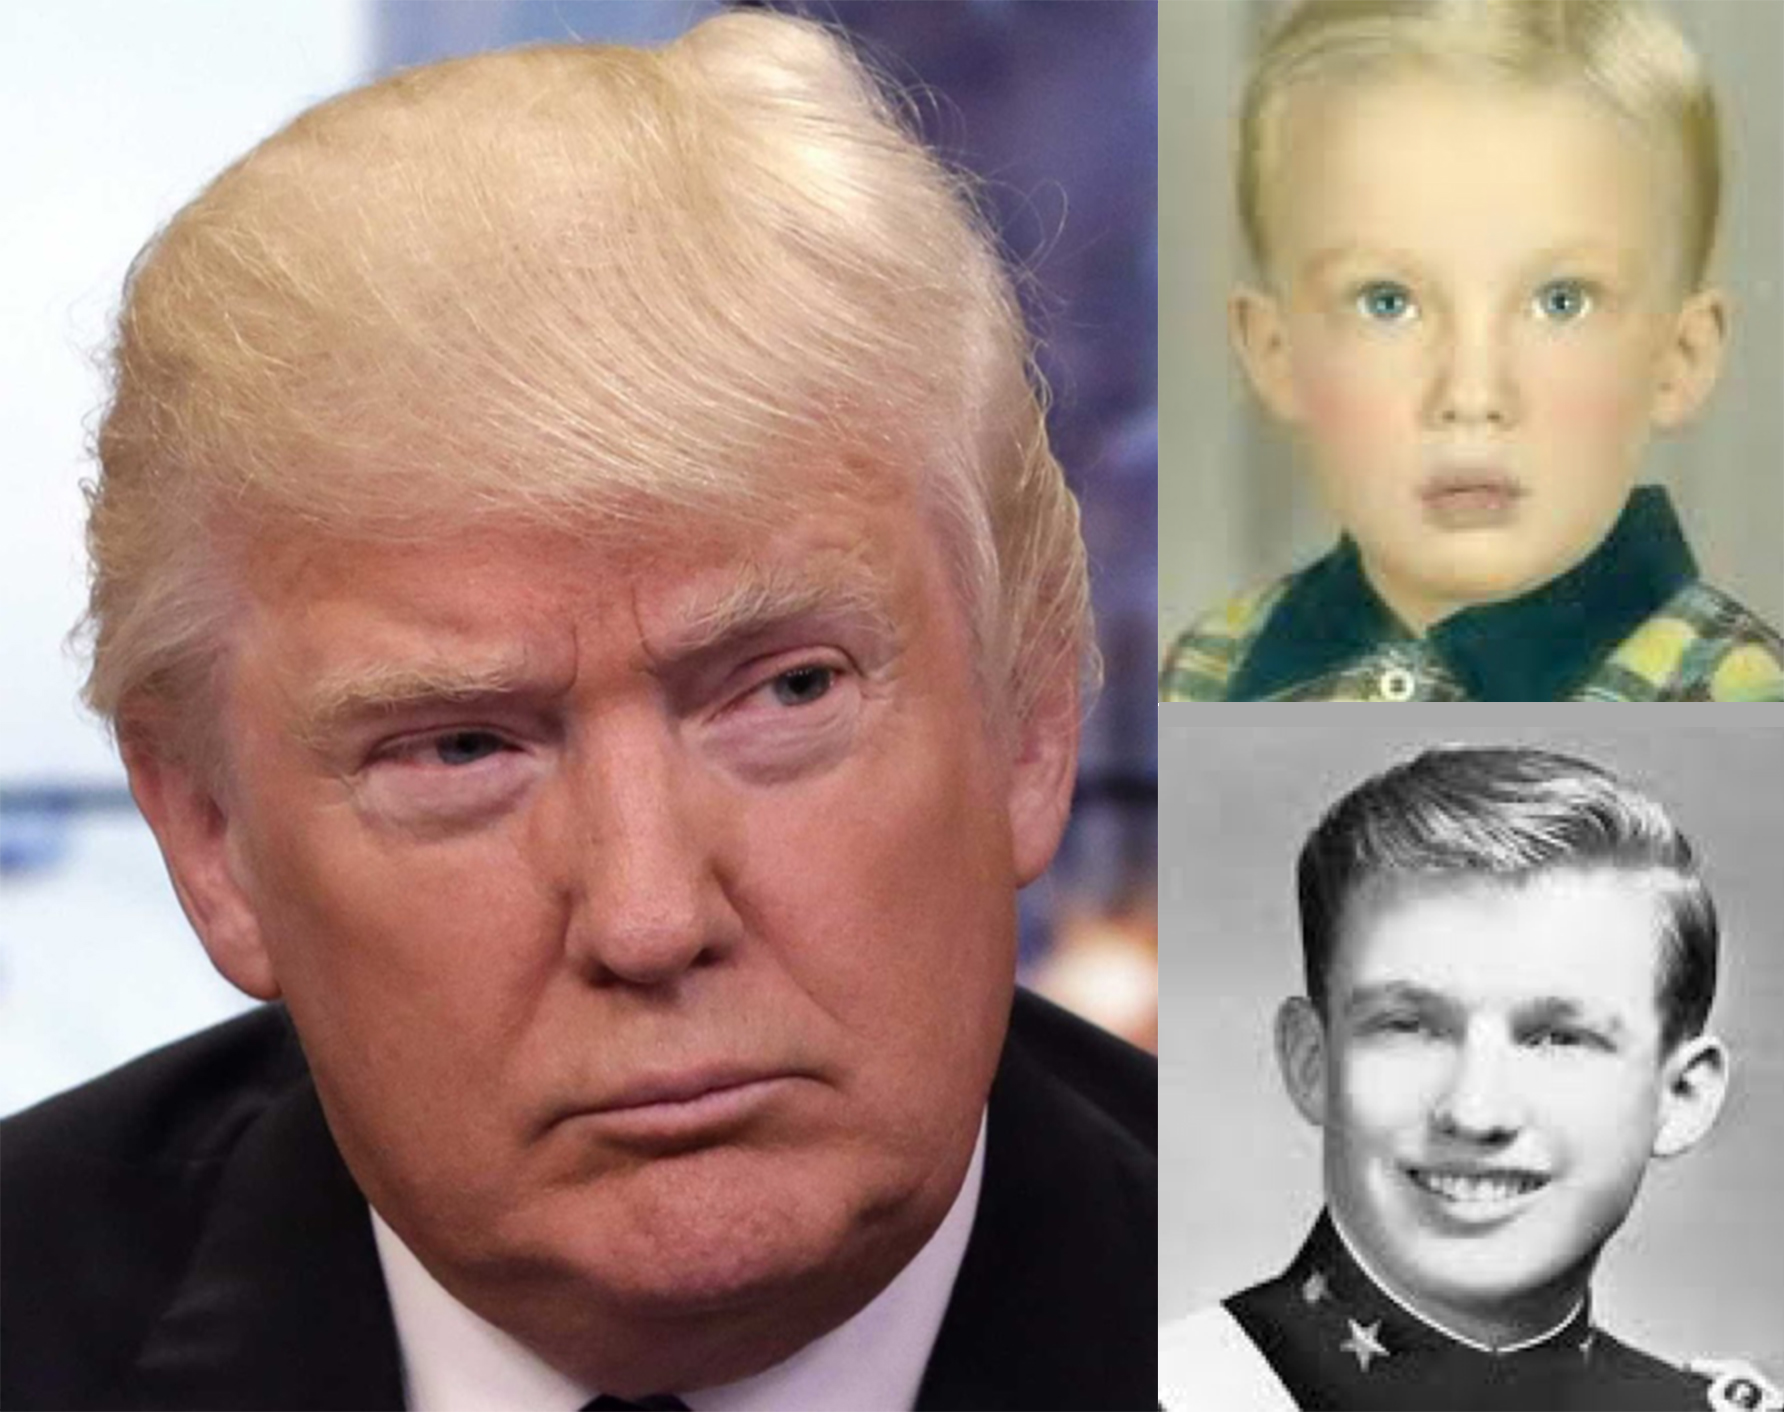 What does donald trump s morphology say by juli n gabarre